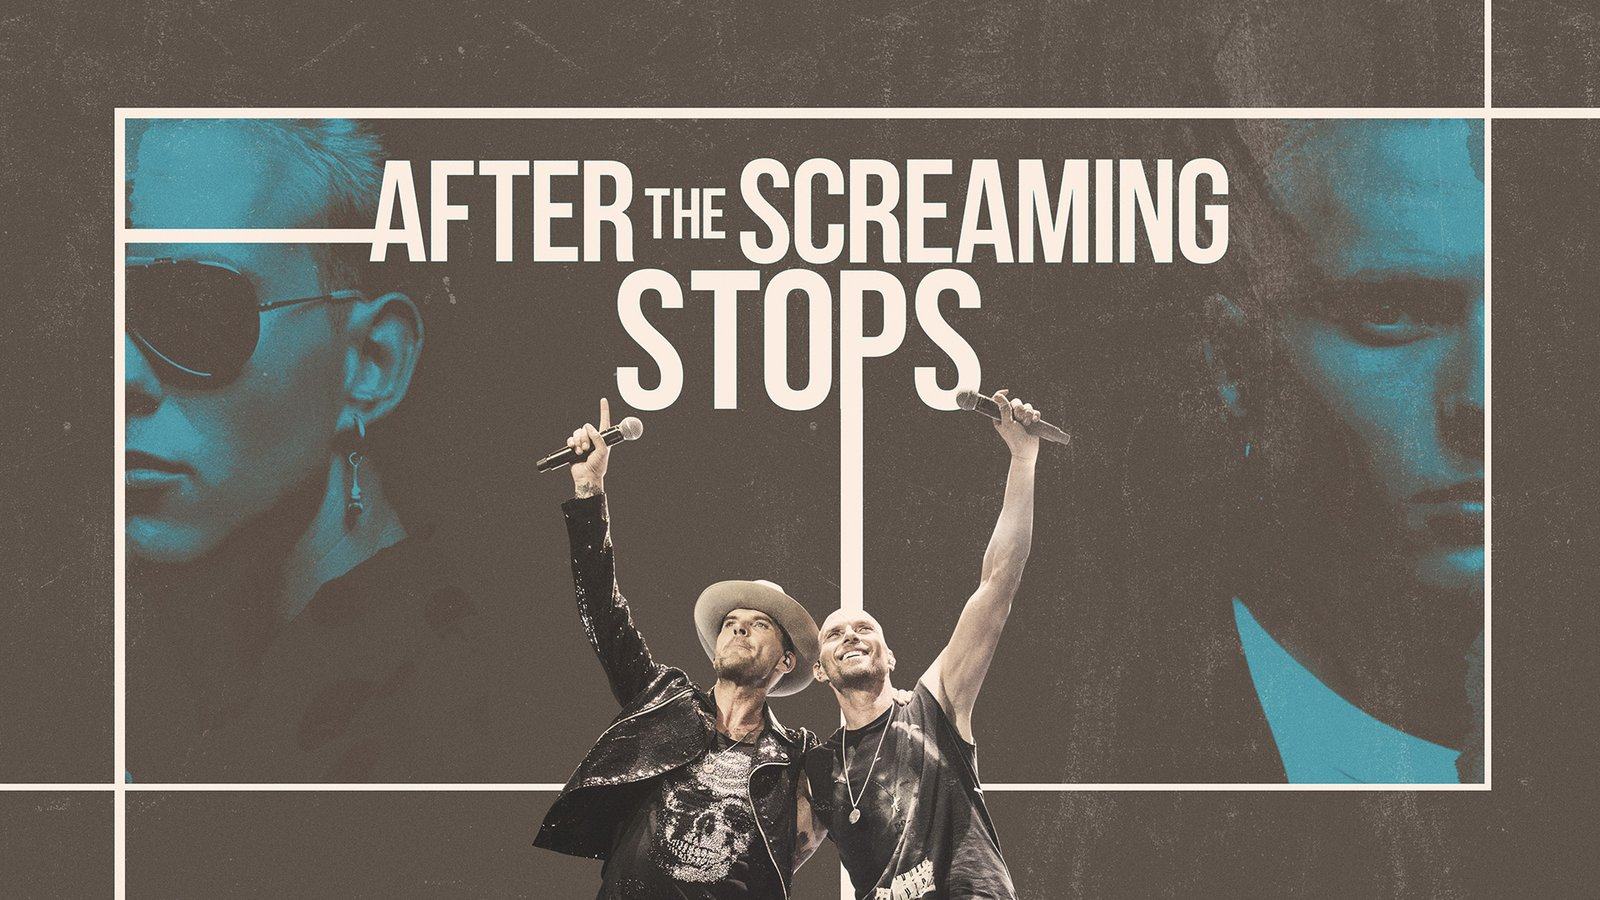 After the Screaming Stops - A British Music Group - Reunited